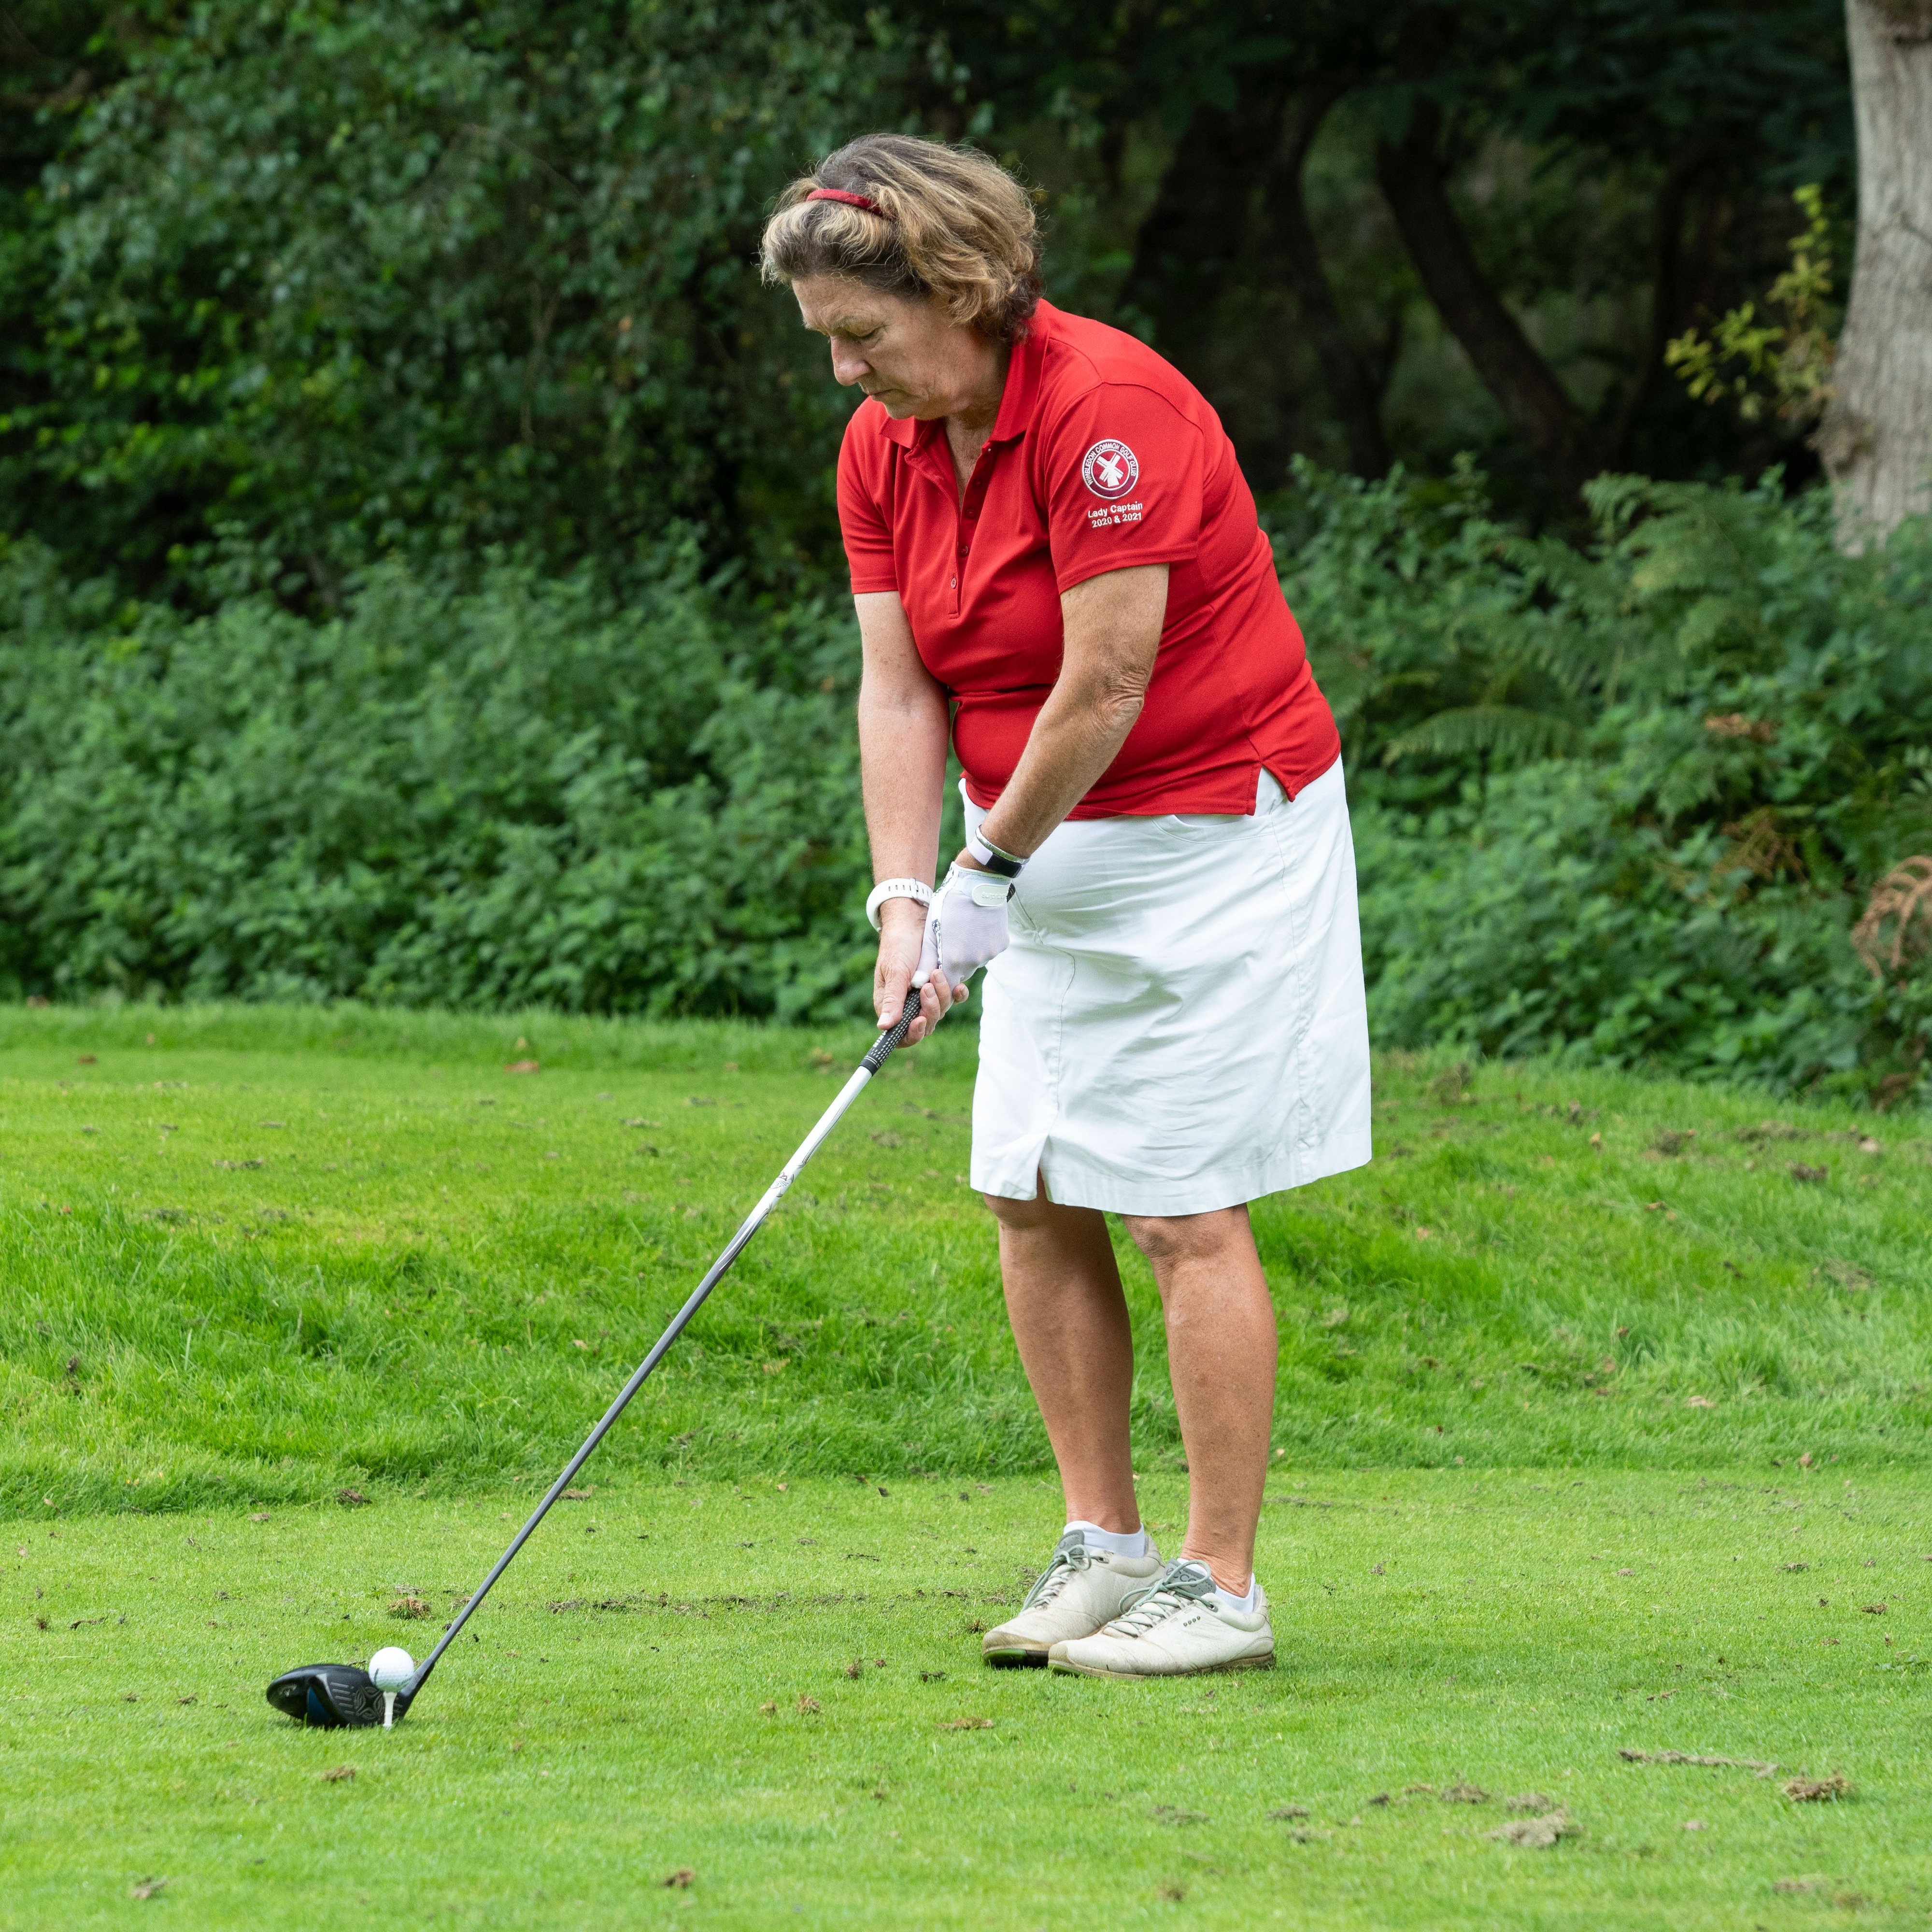 Lady Captain Teeing off